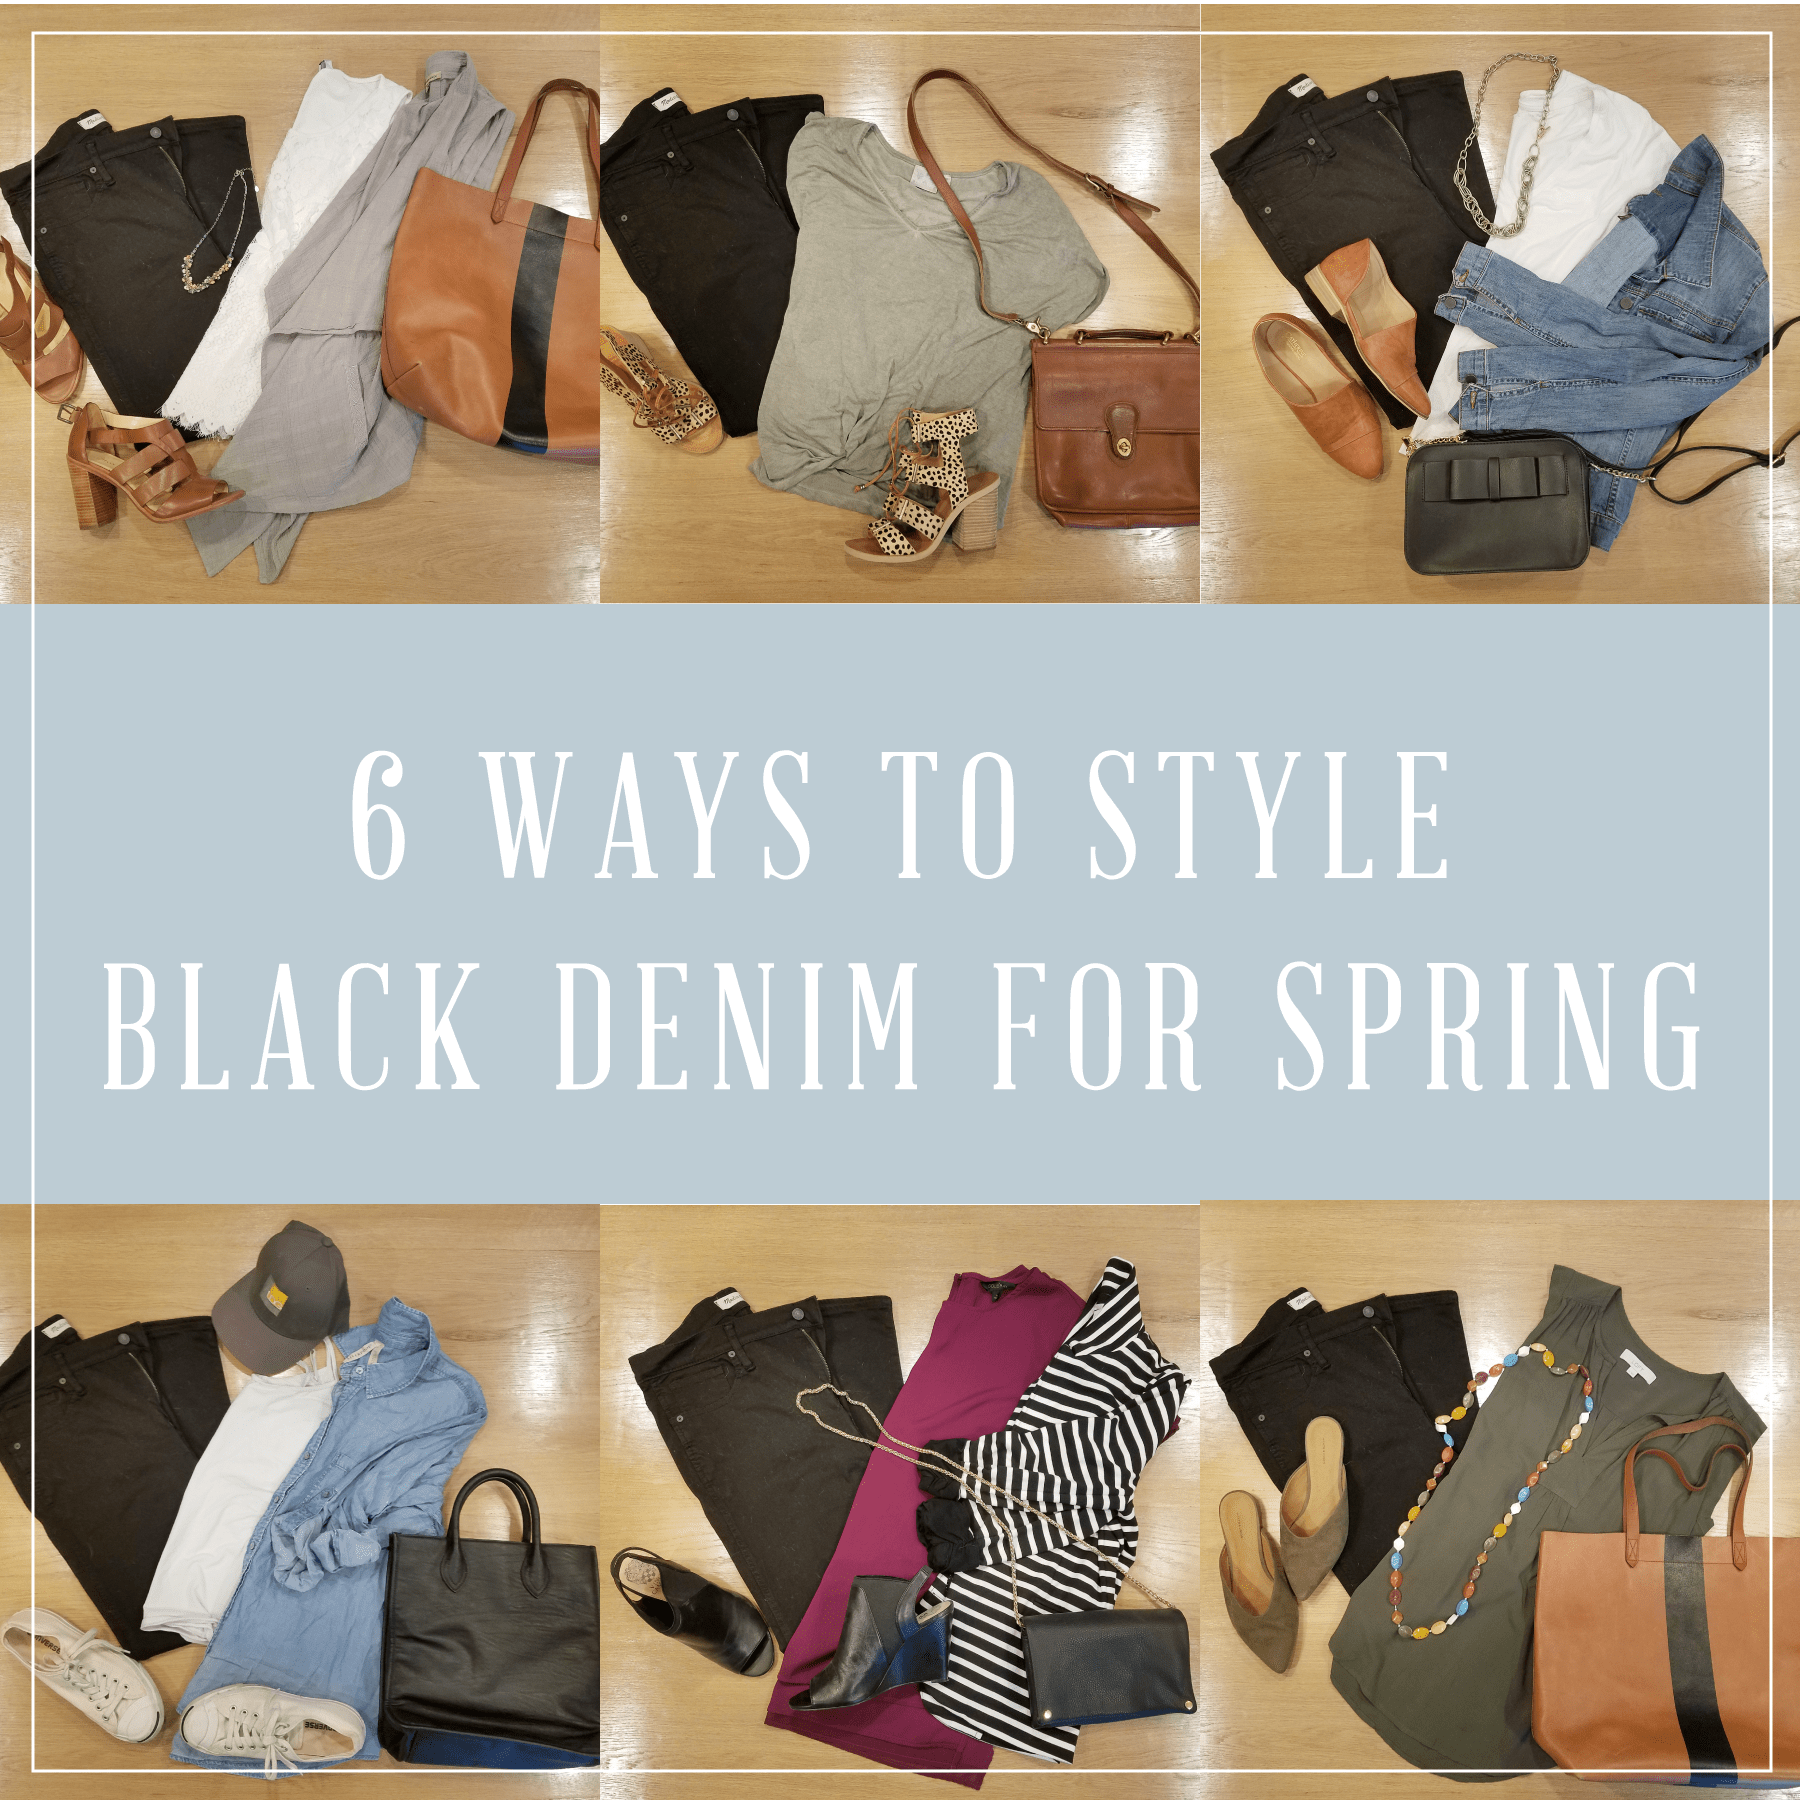 6-ways-to-style-black-denim-for-spring